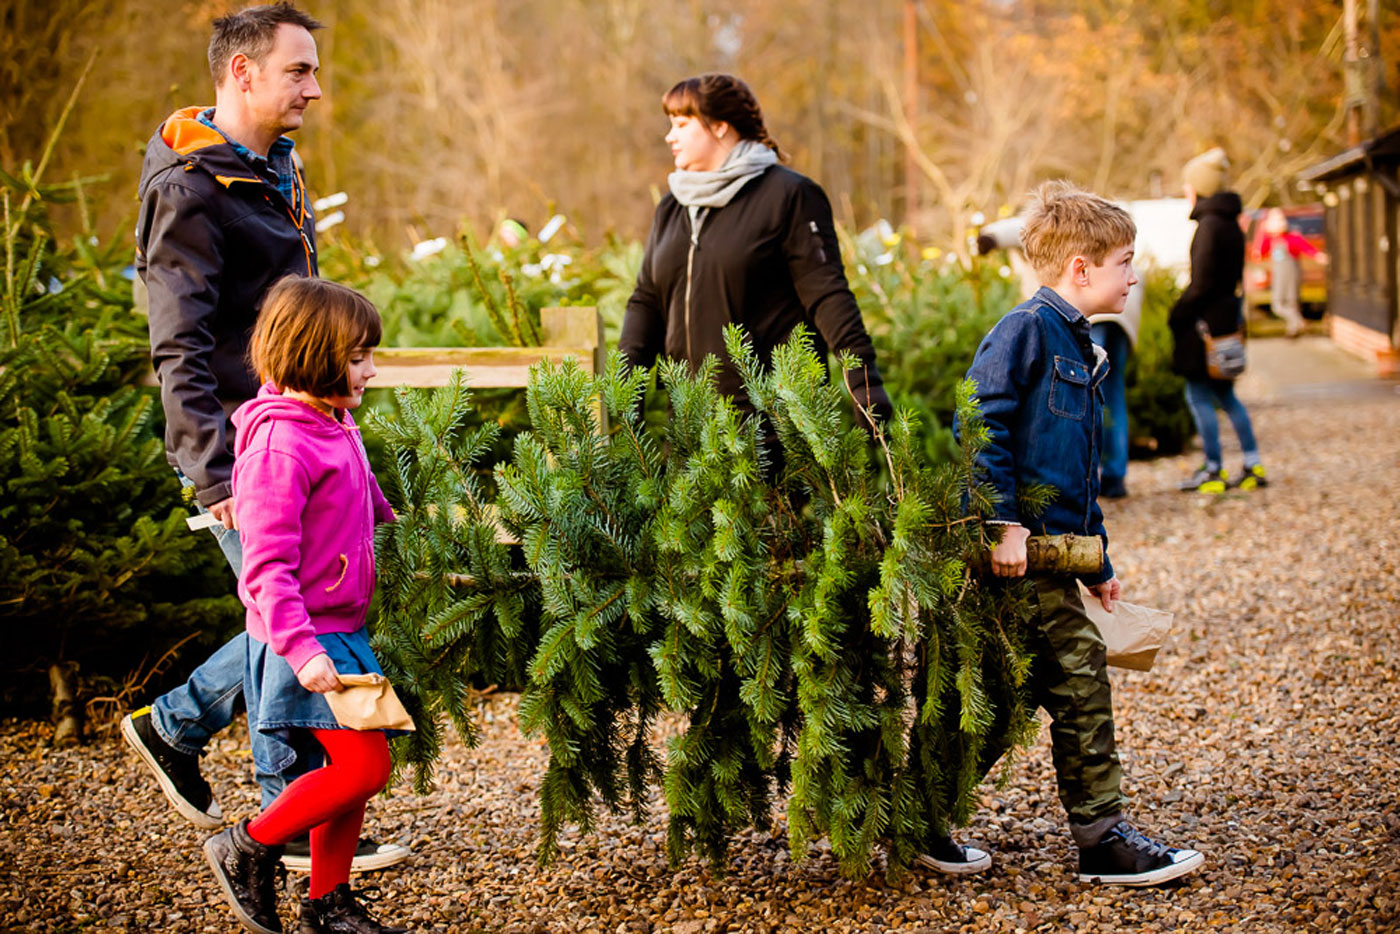 Family purchasing a lush Christmas tree